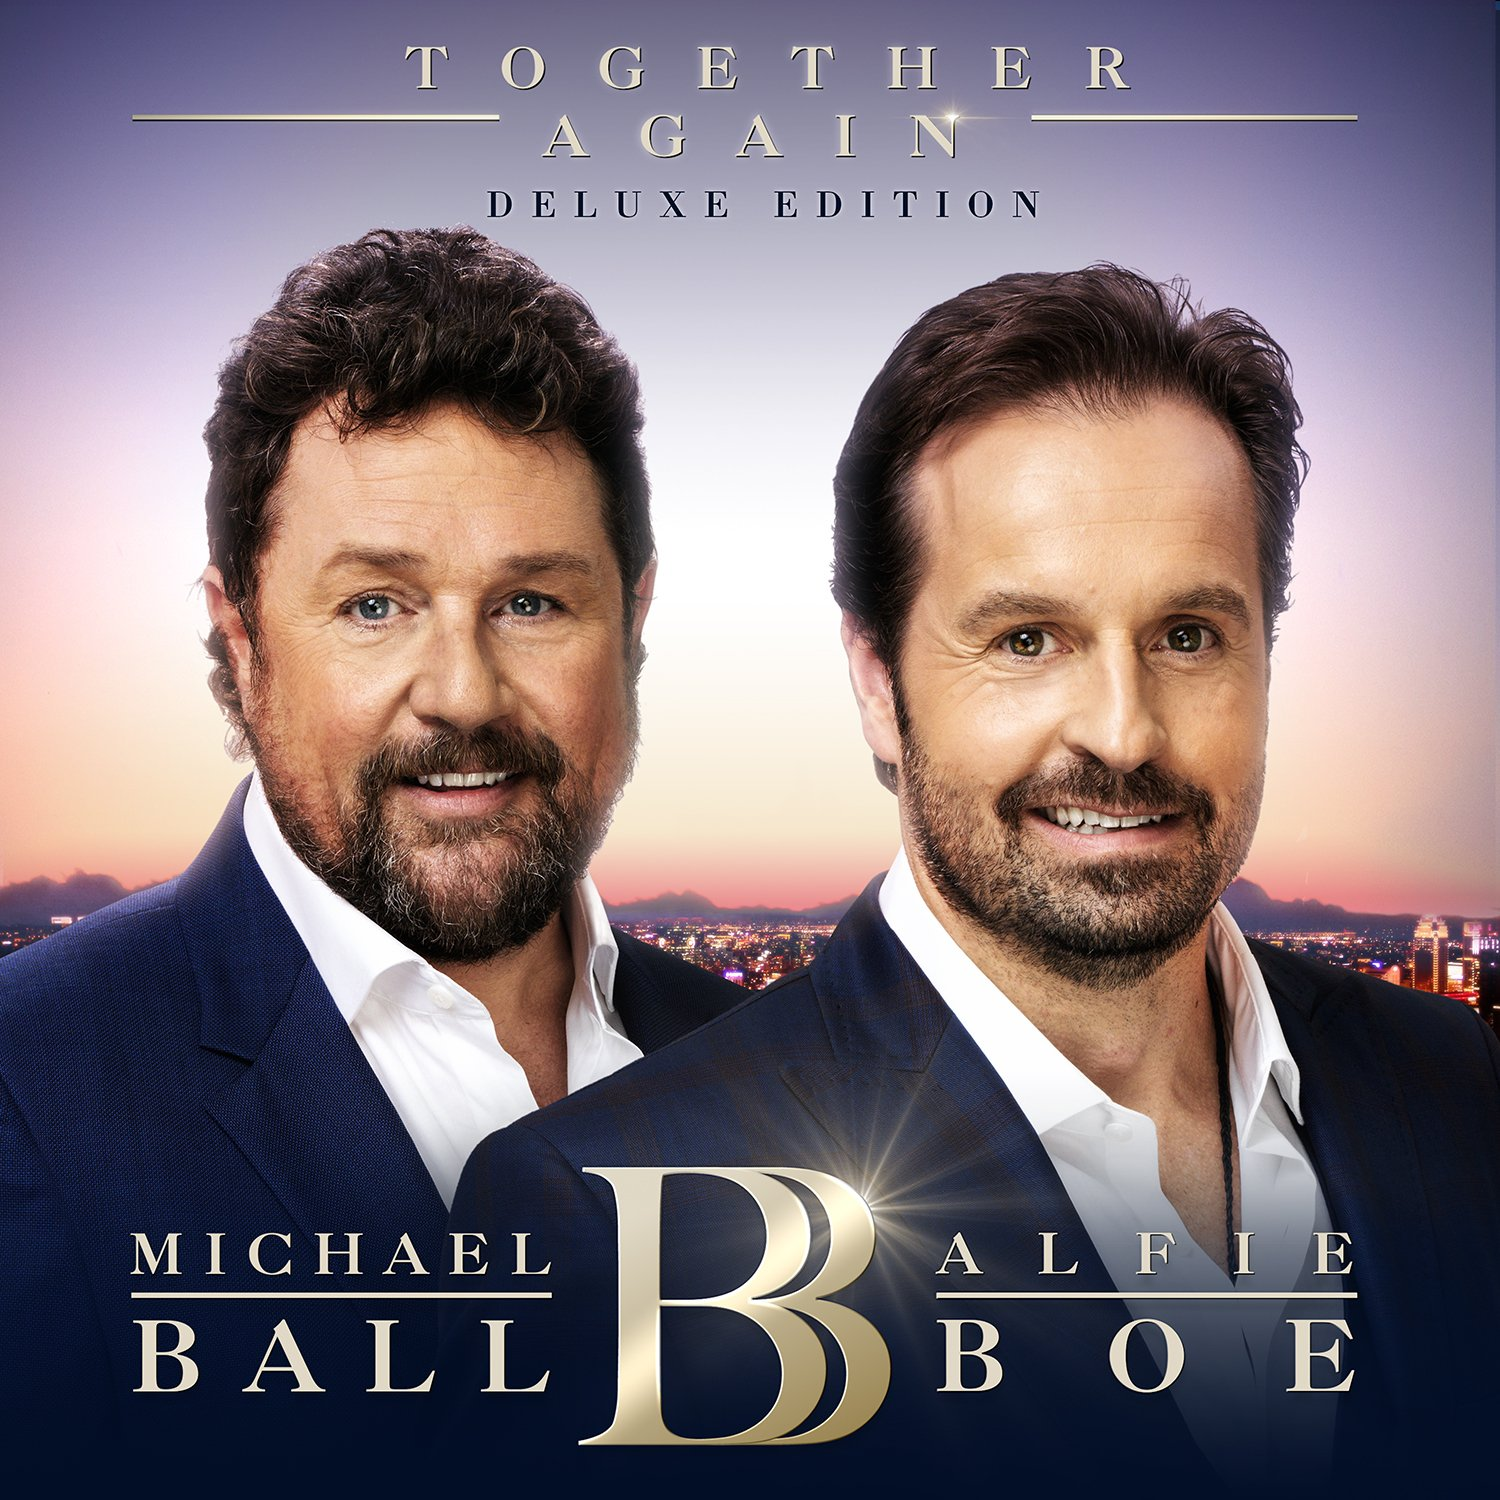 Together Again Deluxe